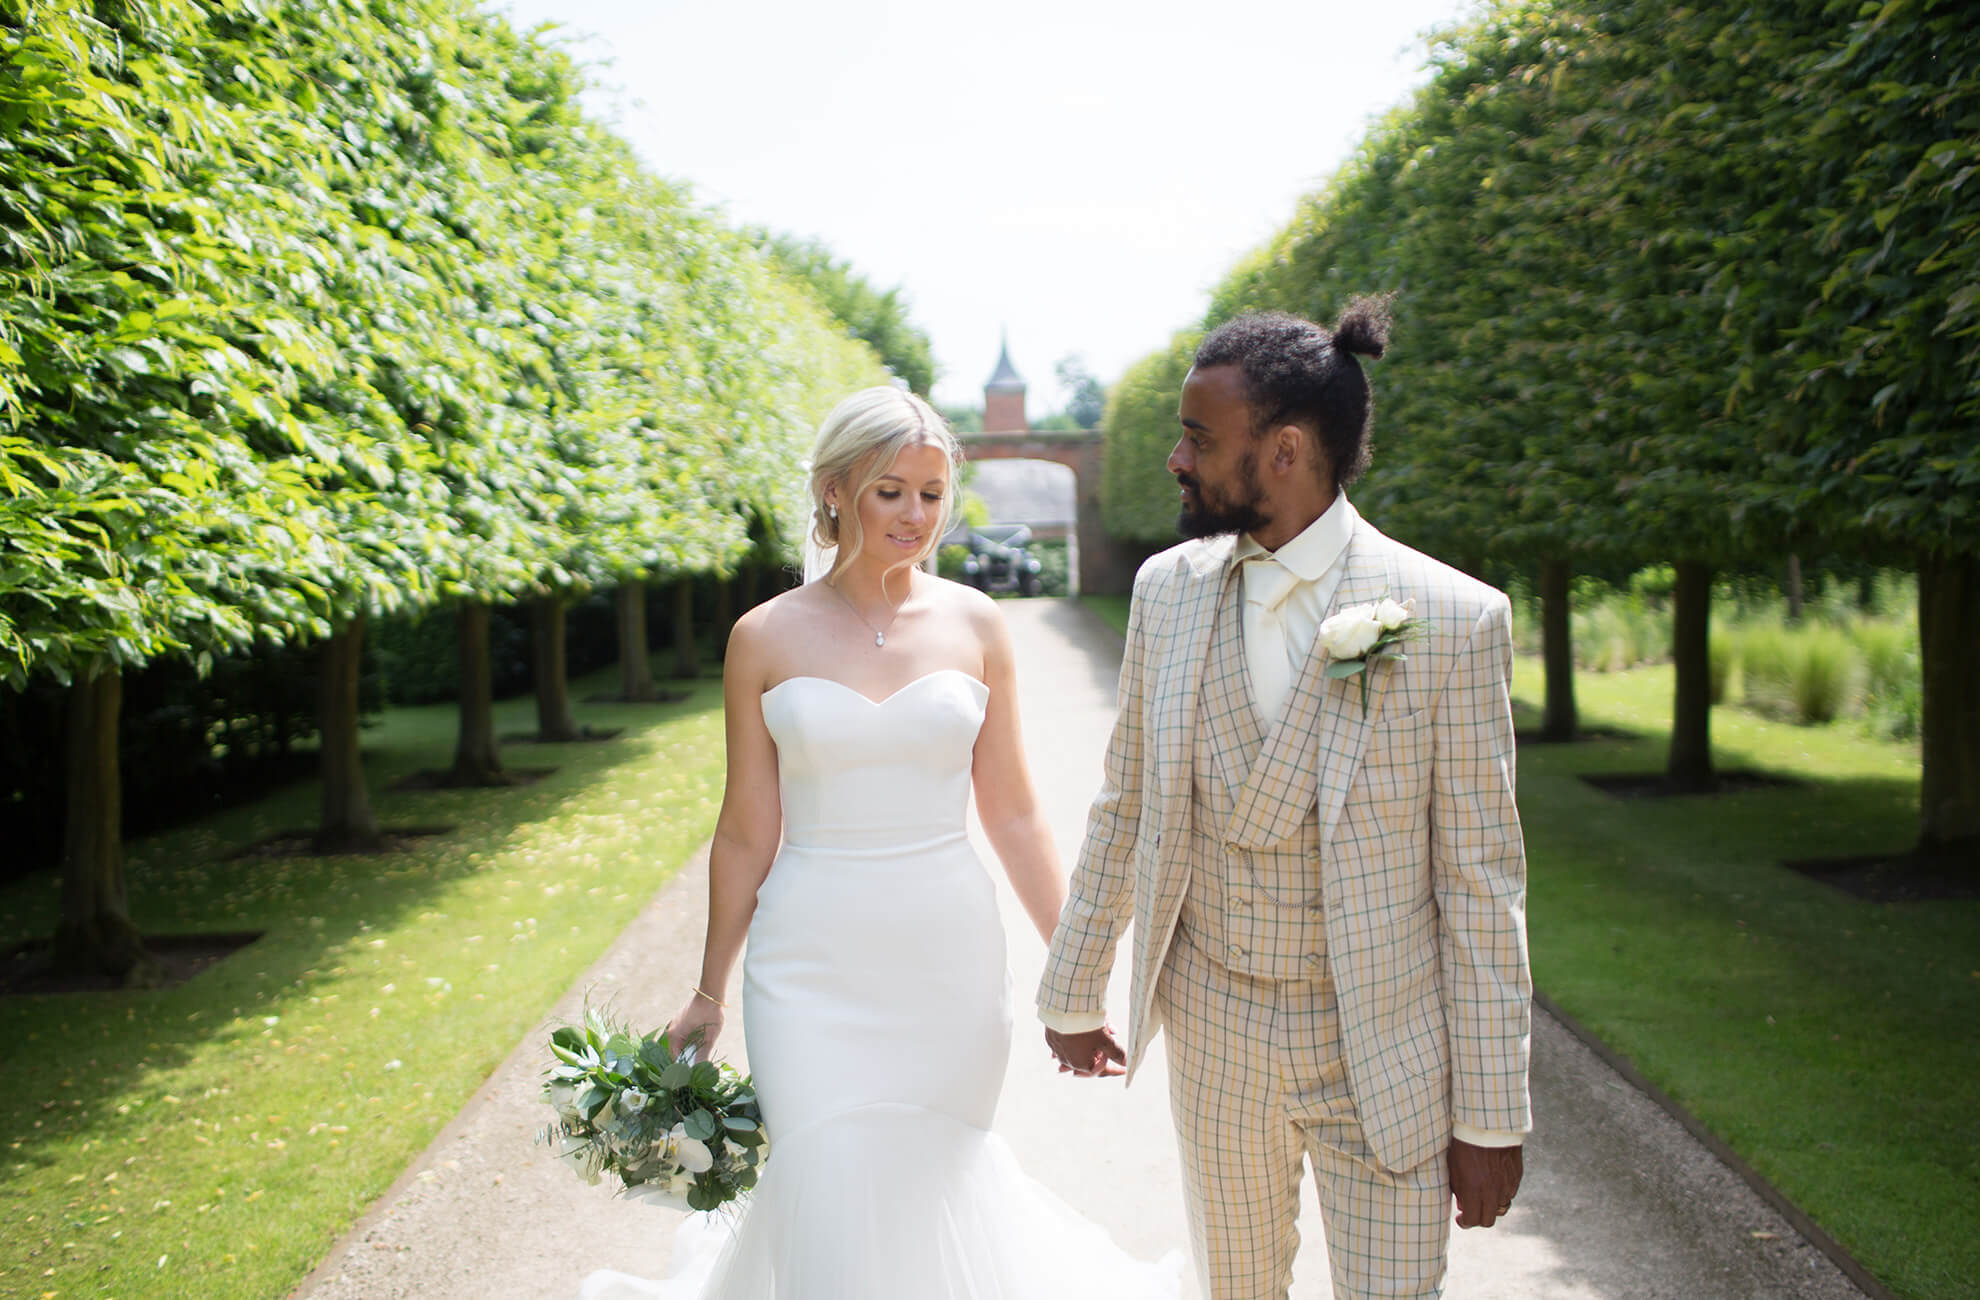 Newlyweds explore the Victorian gardens at this beautiful country wedding venue in Cheshire